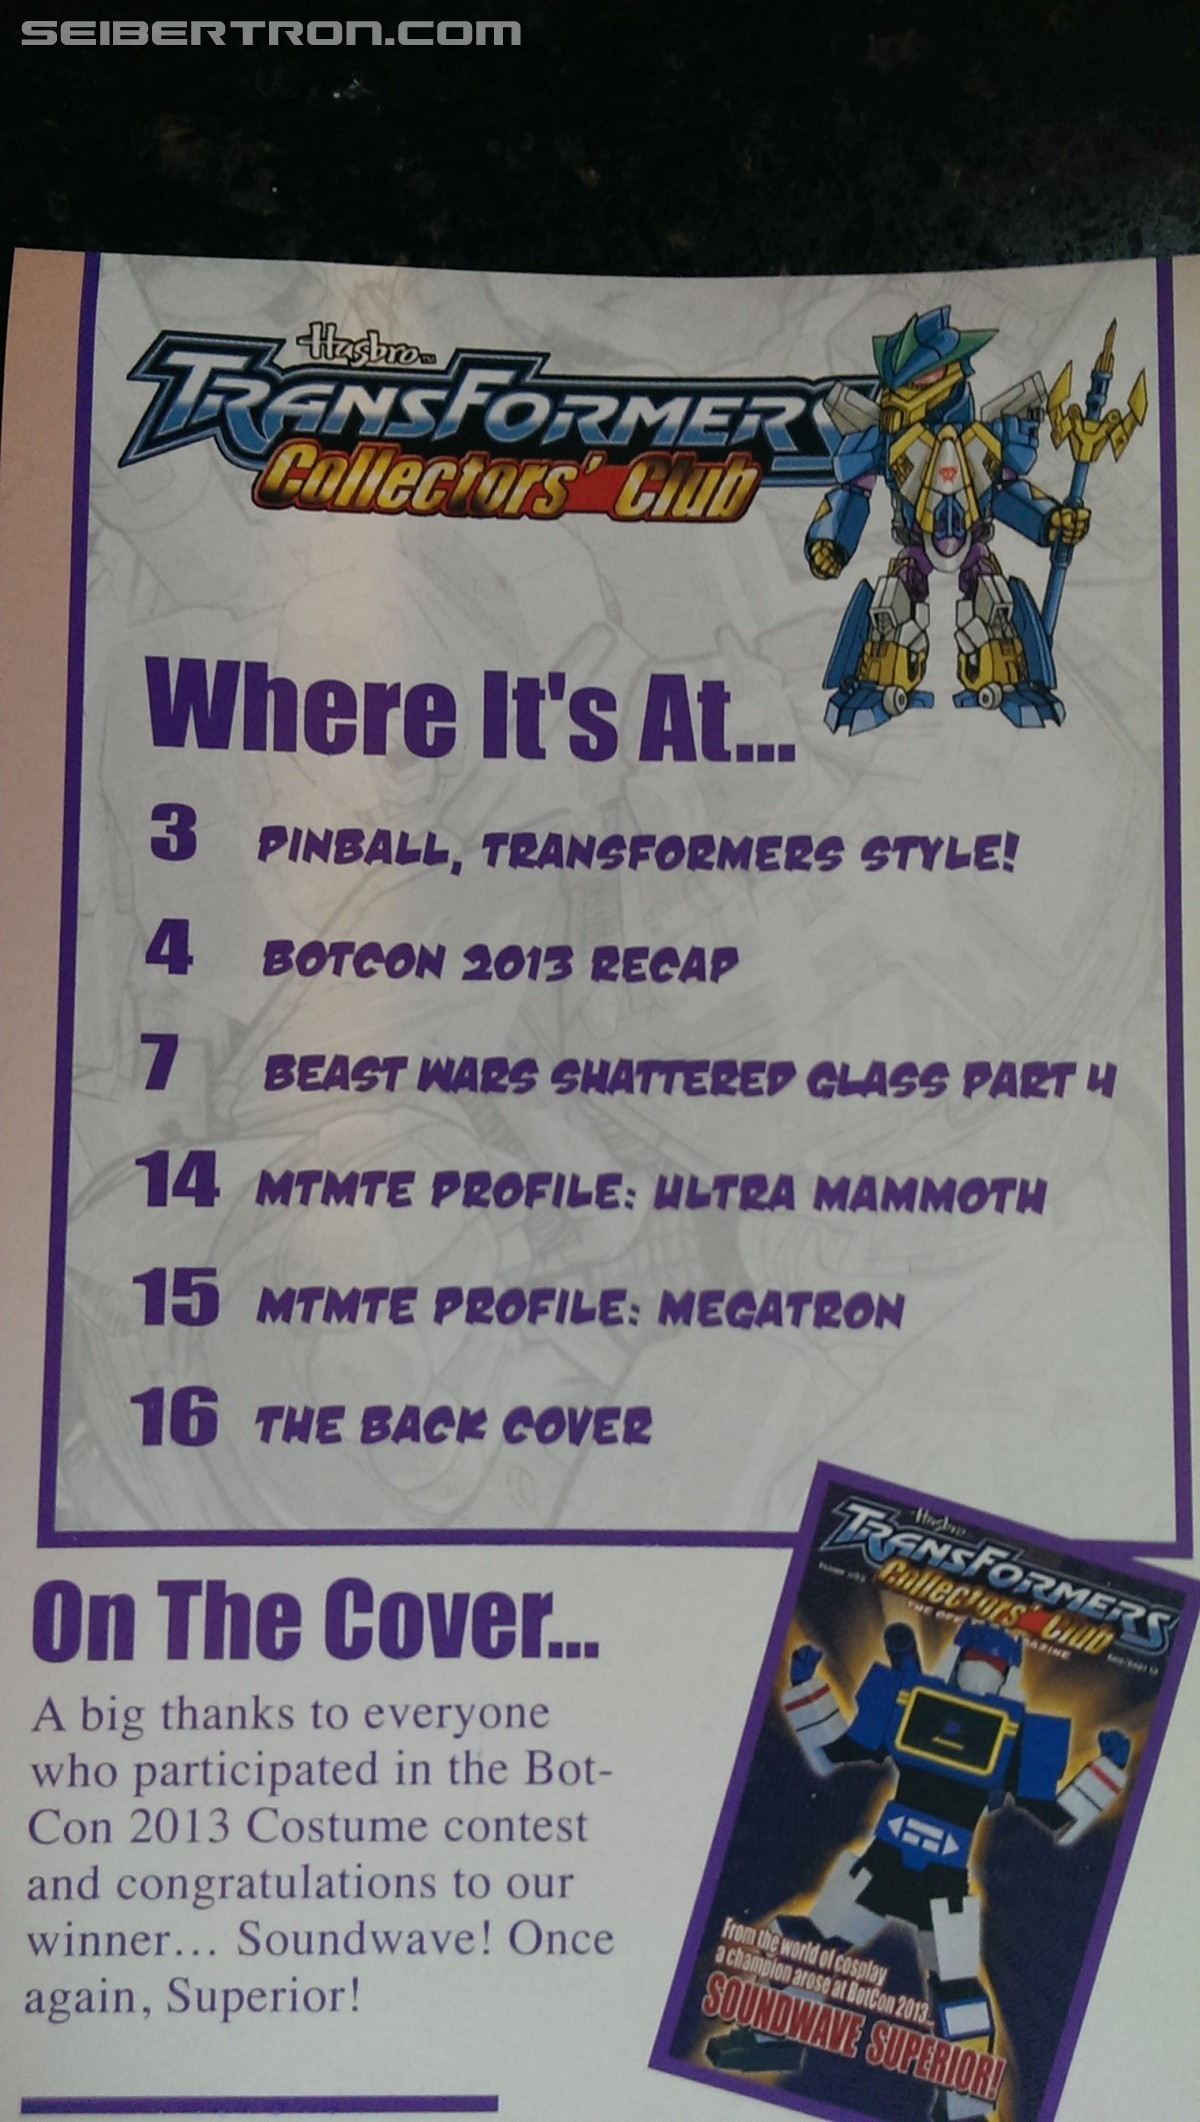 Transformers Collectors' Club Magazine #52 - Cover and Contents